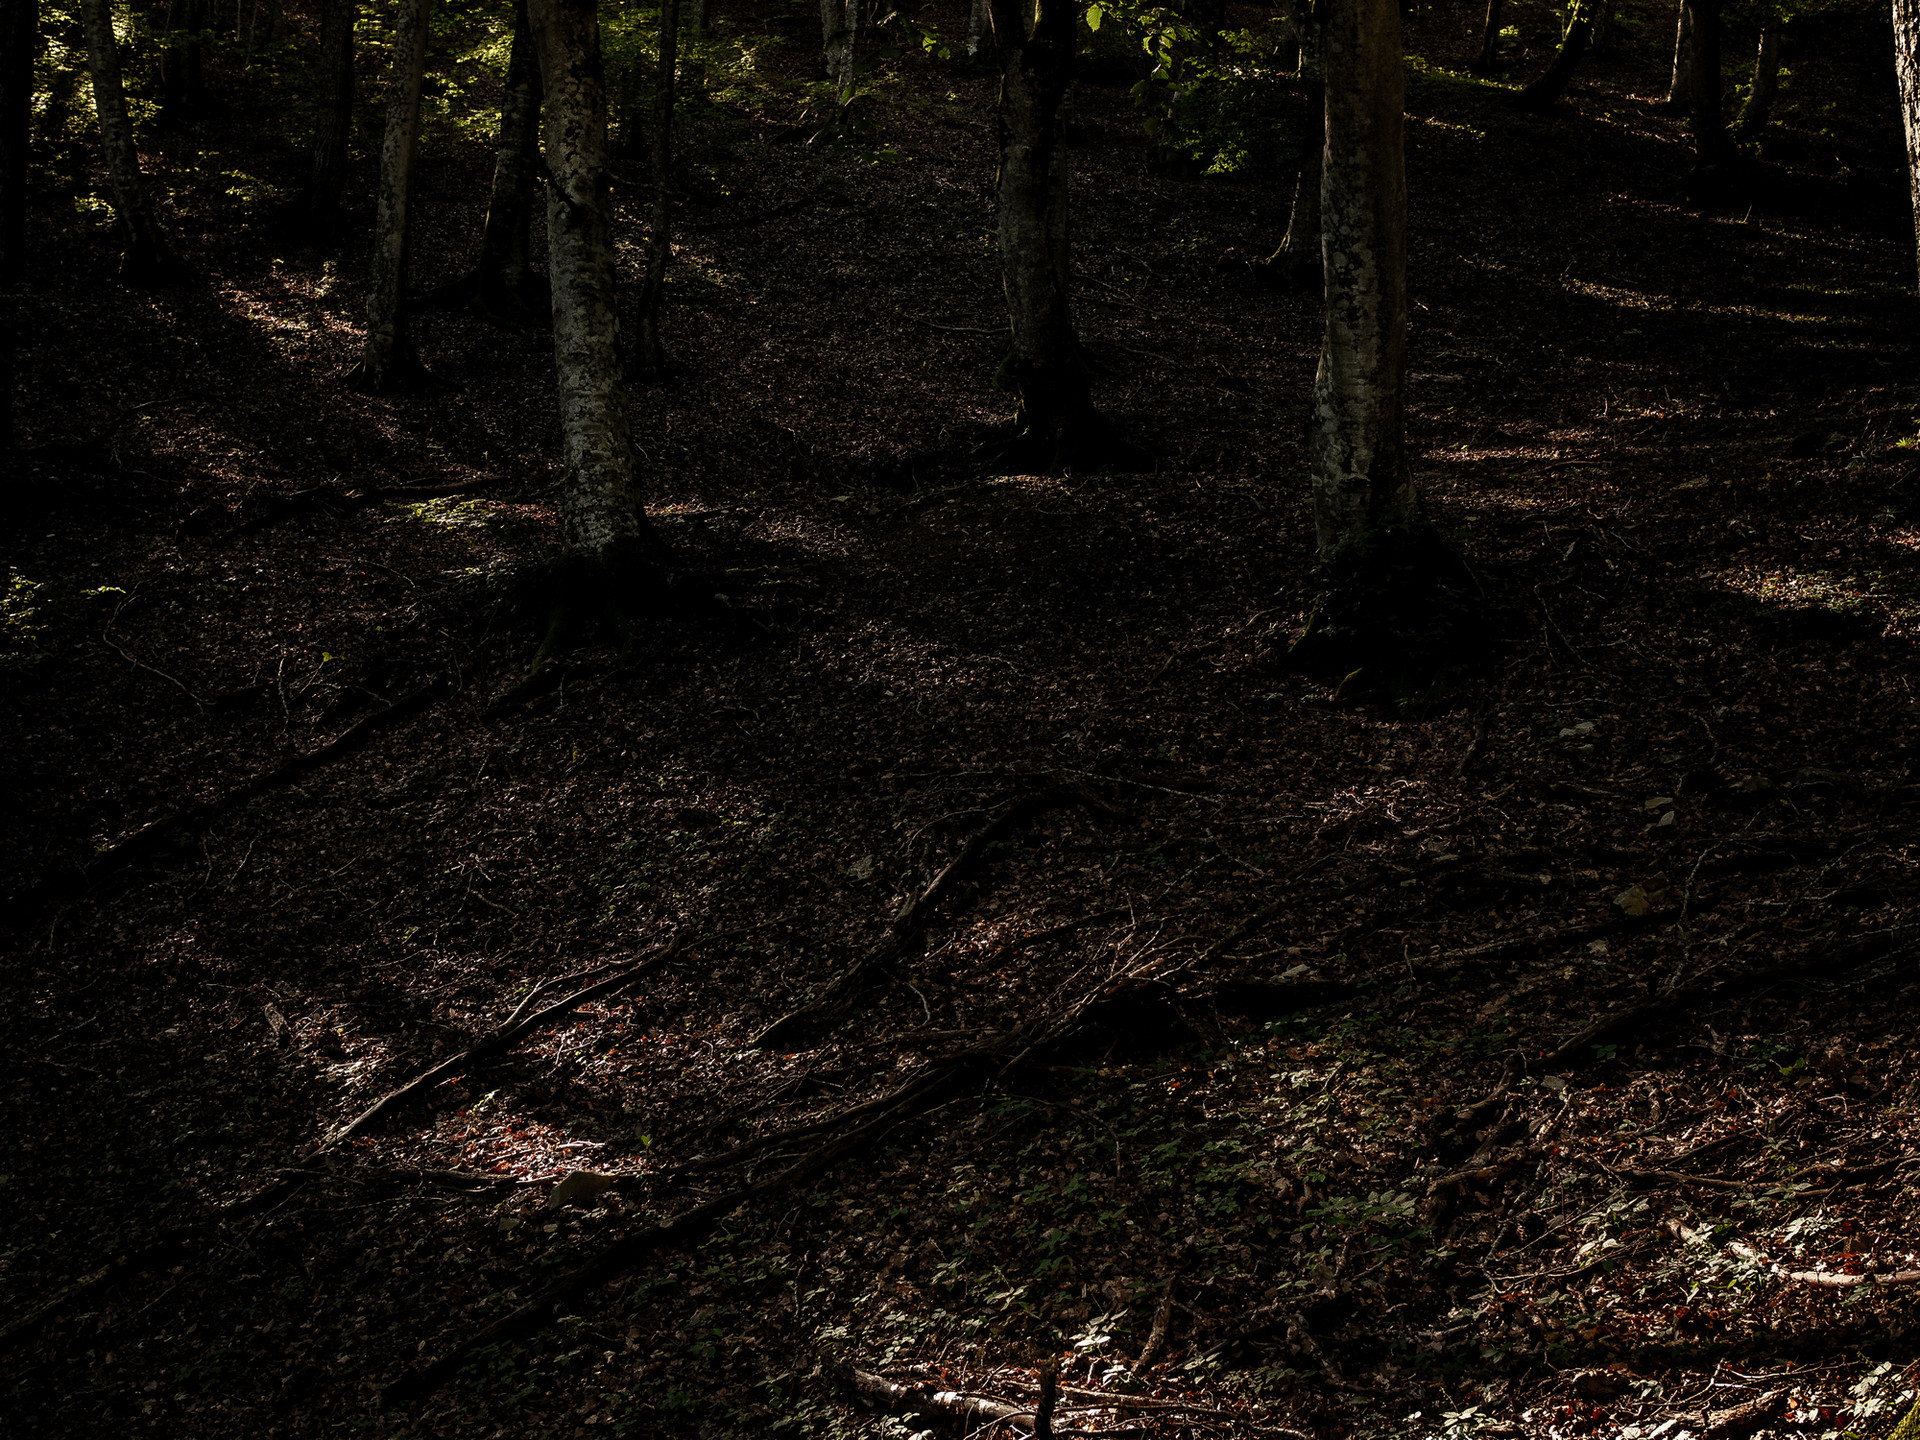 In this beech forest the Germans built a camp during the Second World War. They fled when were overwhelmed by the Americans. Many fragments of American mortar shards can still be found because of the attacks coming from the other side of the hill.